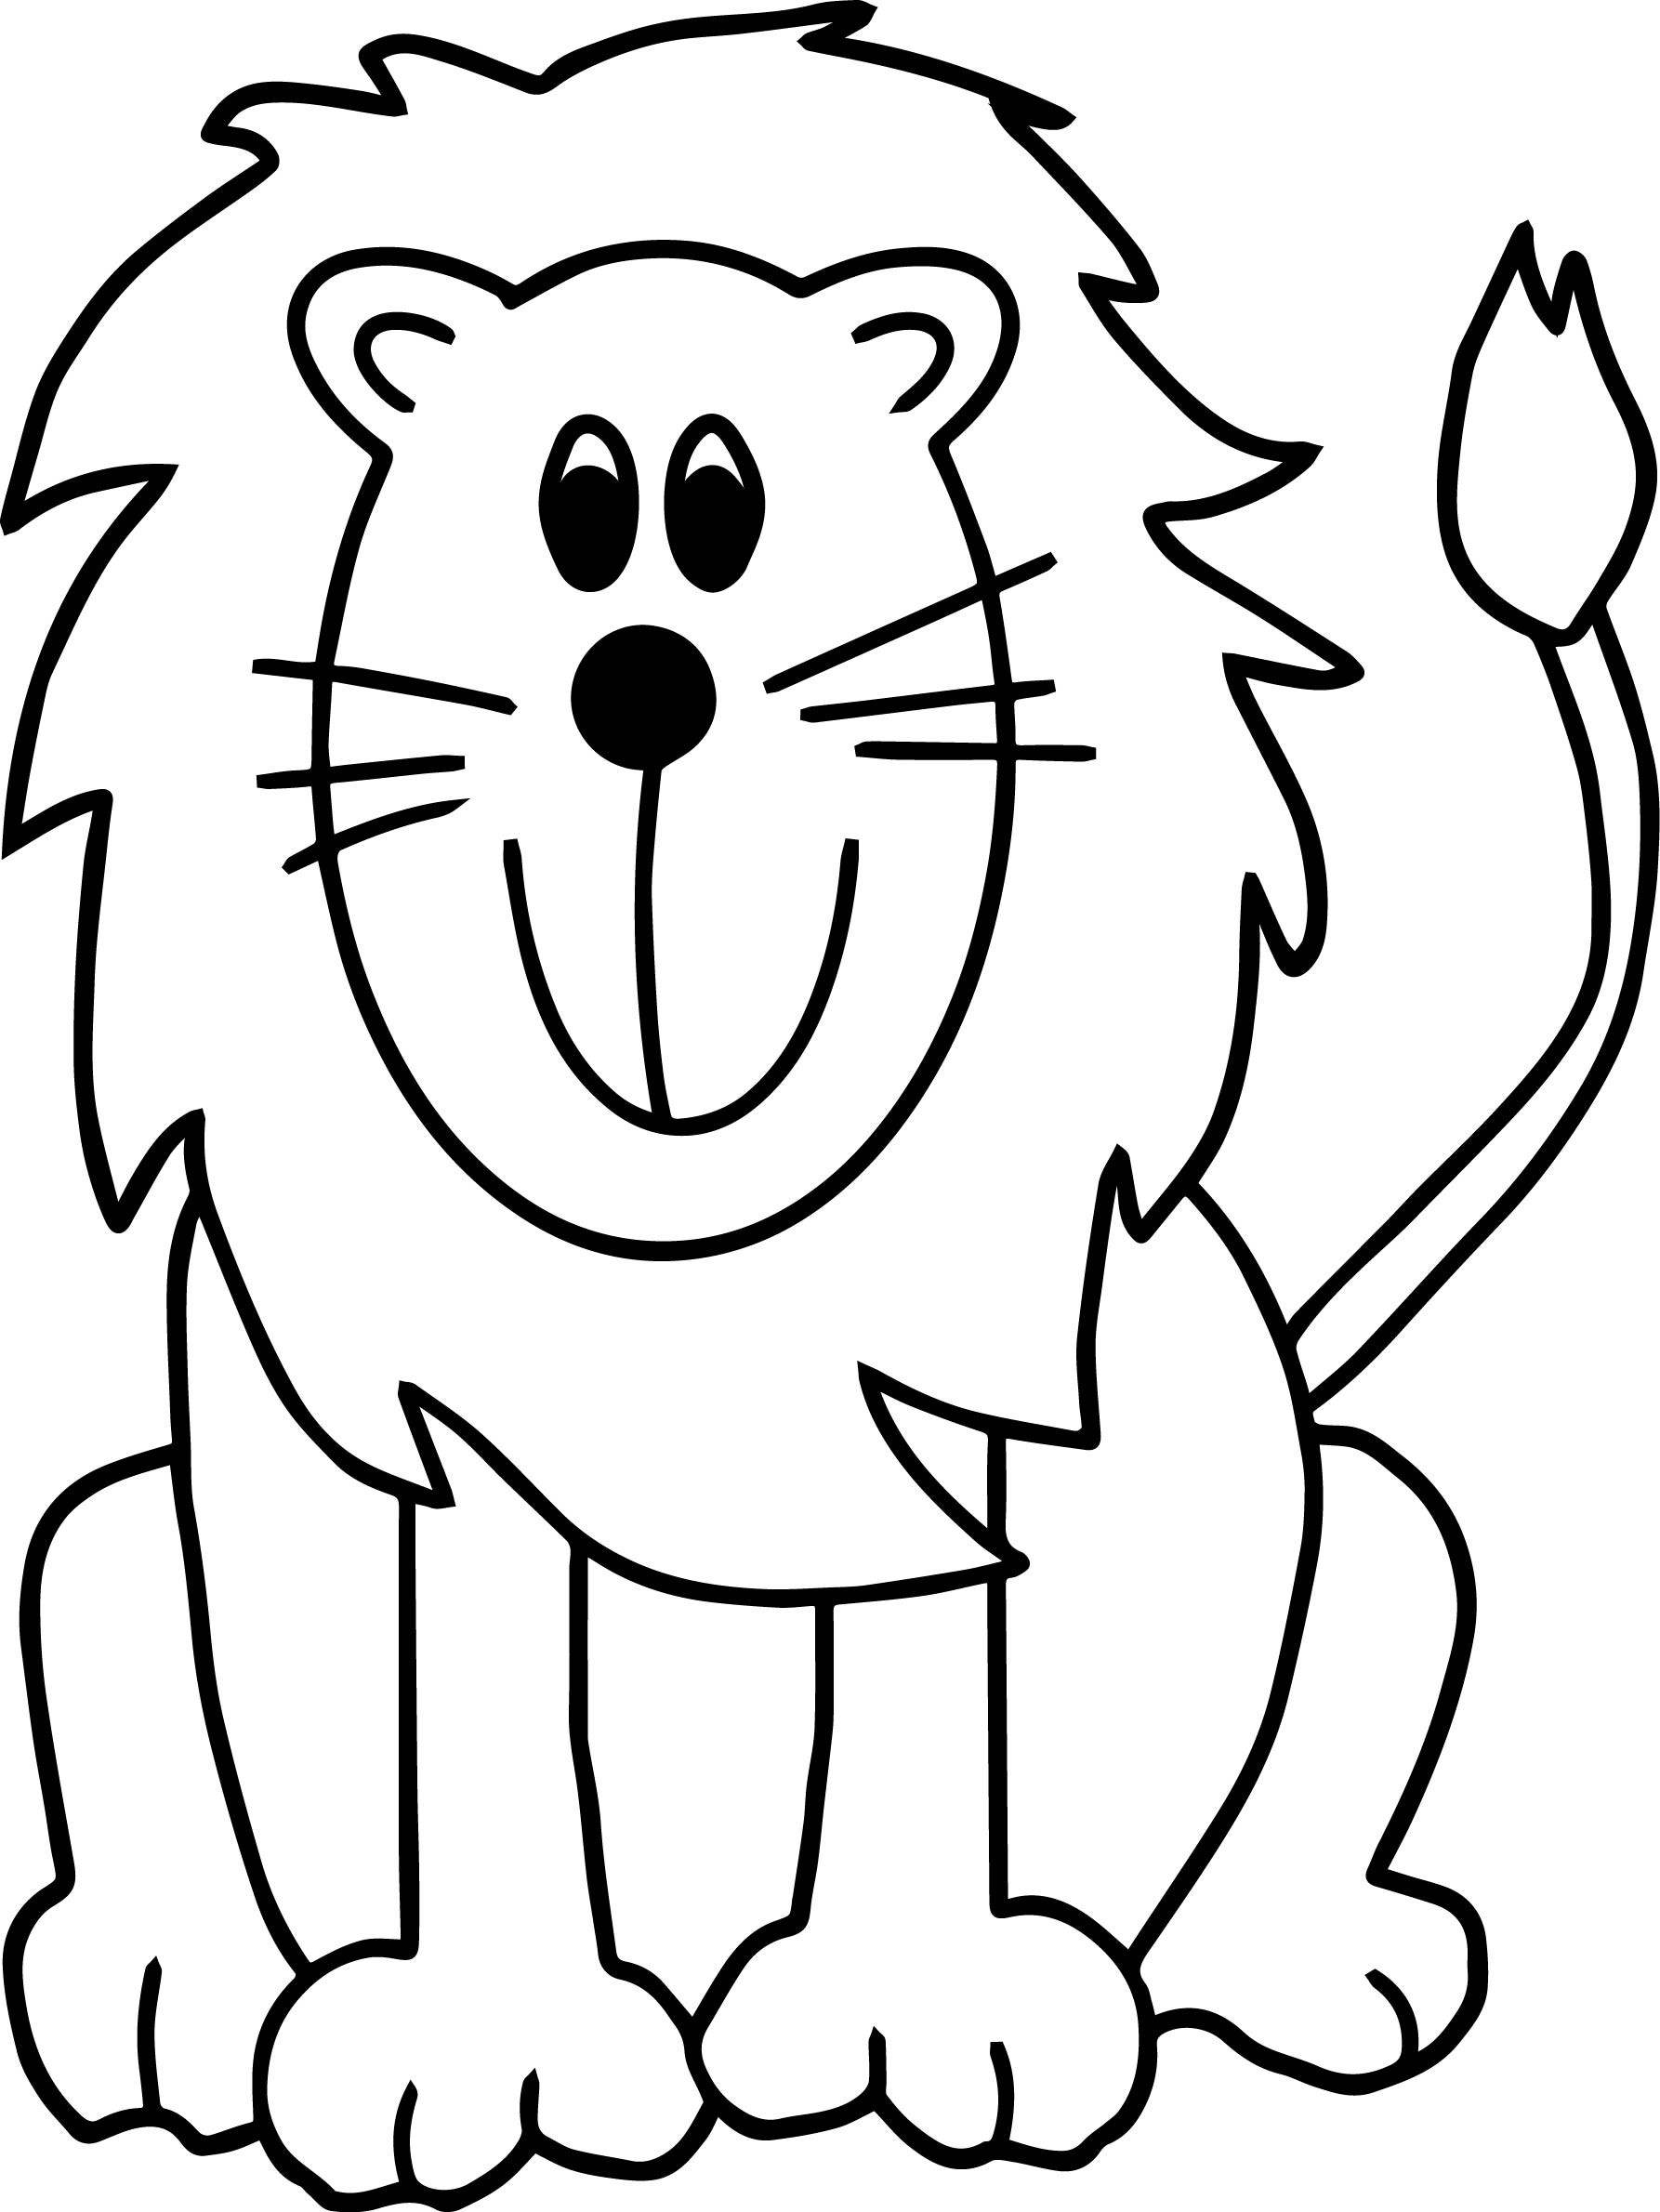 free zoo coloring pages free printable zoo coloring pages for kids sketch coloring pages free coloring zoo